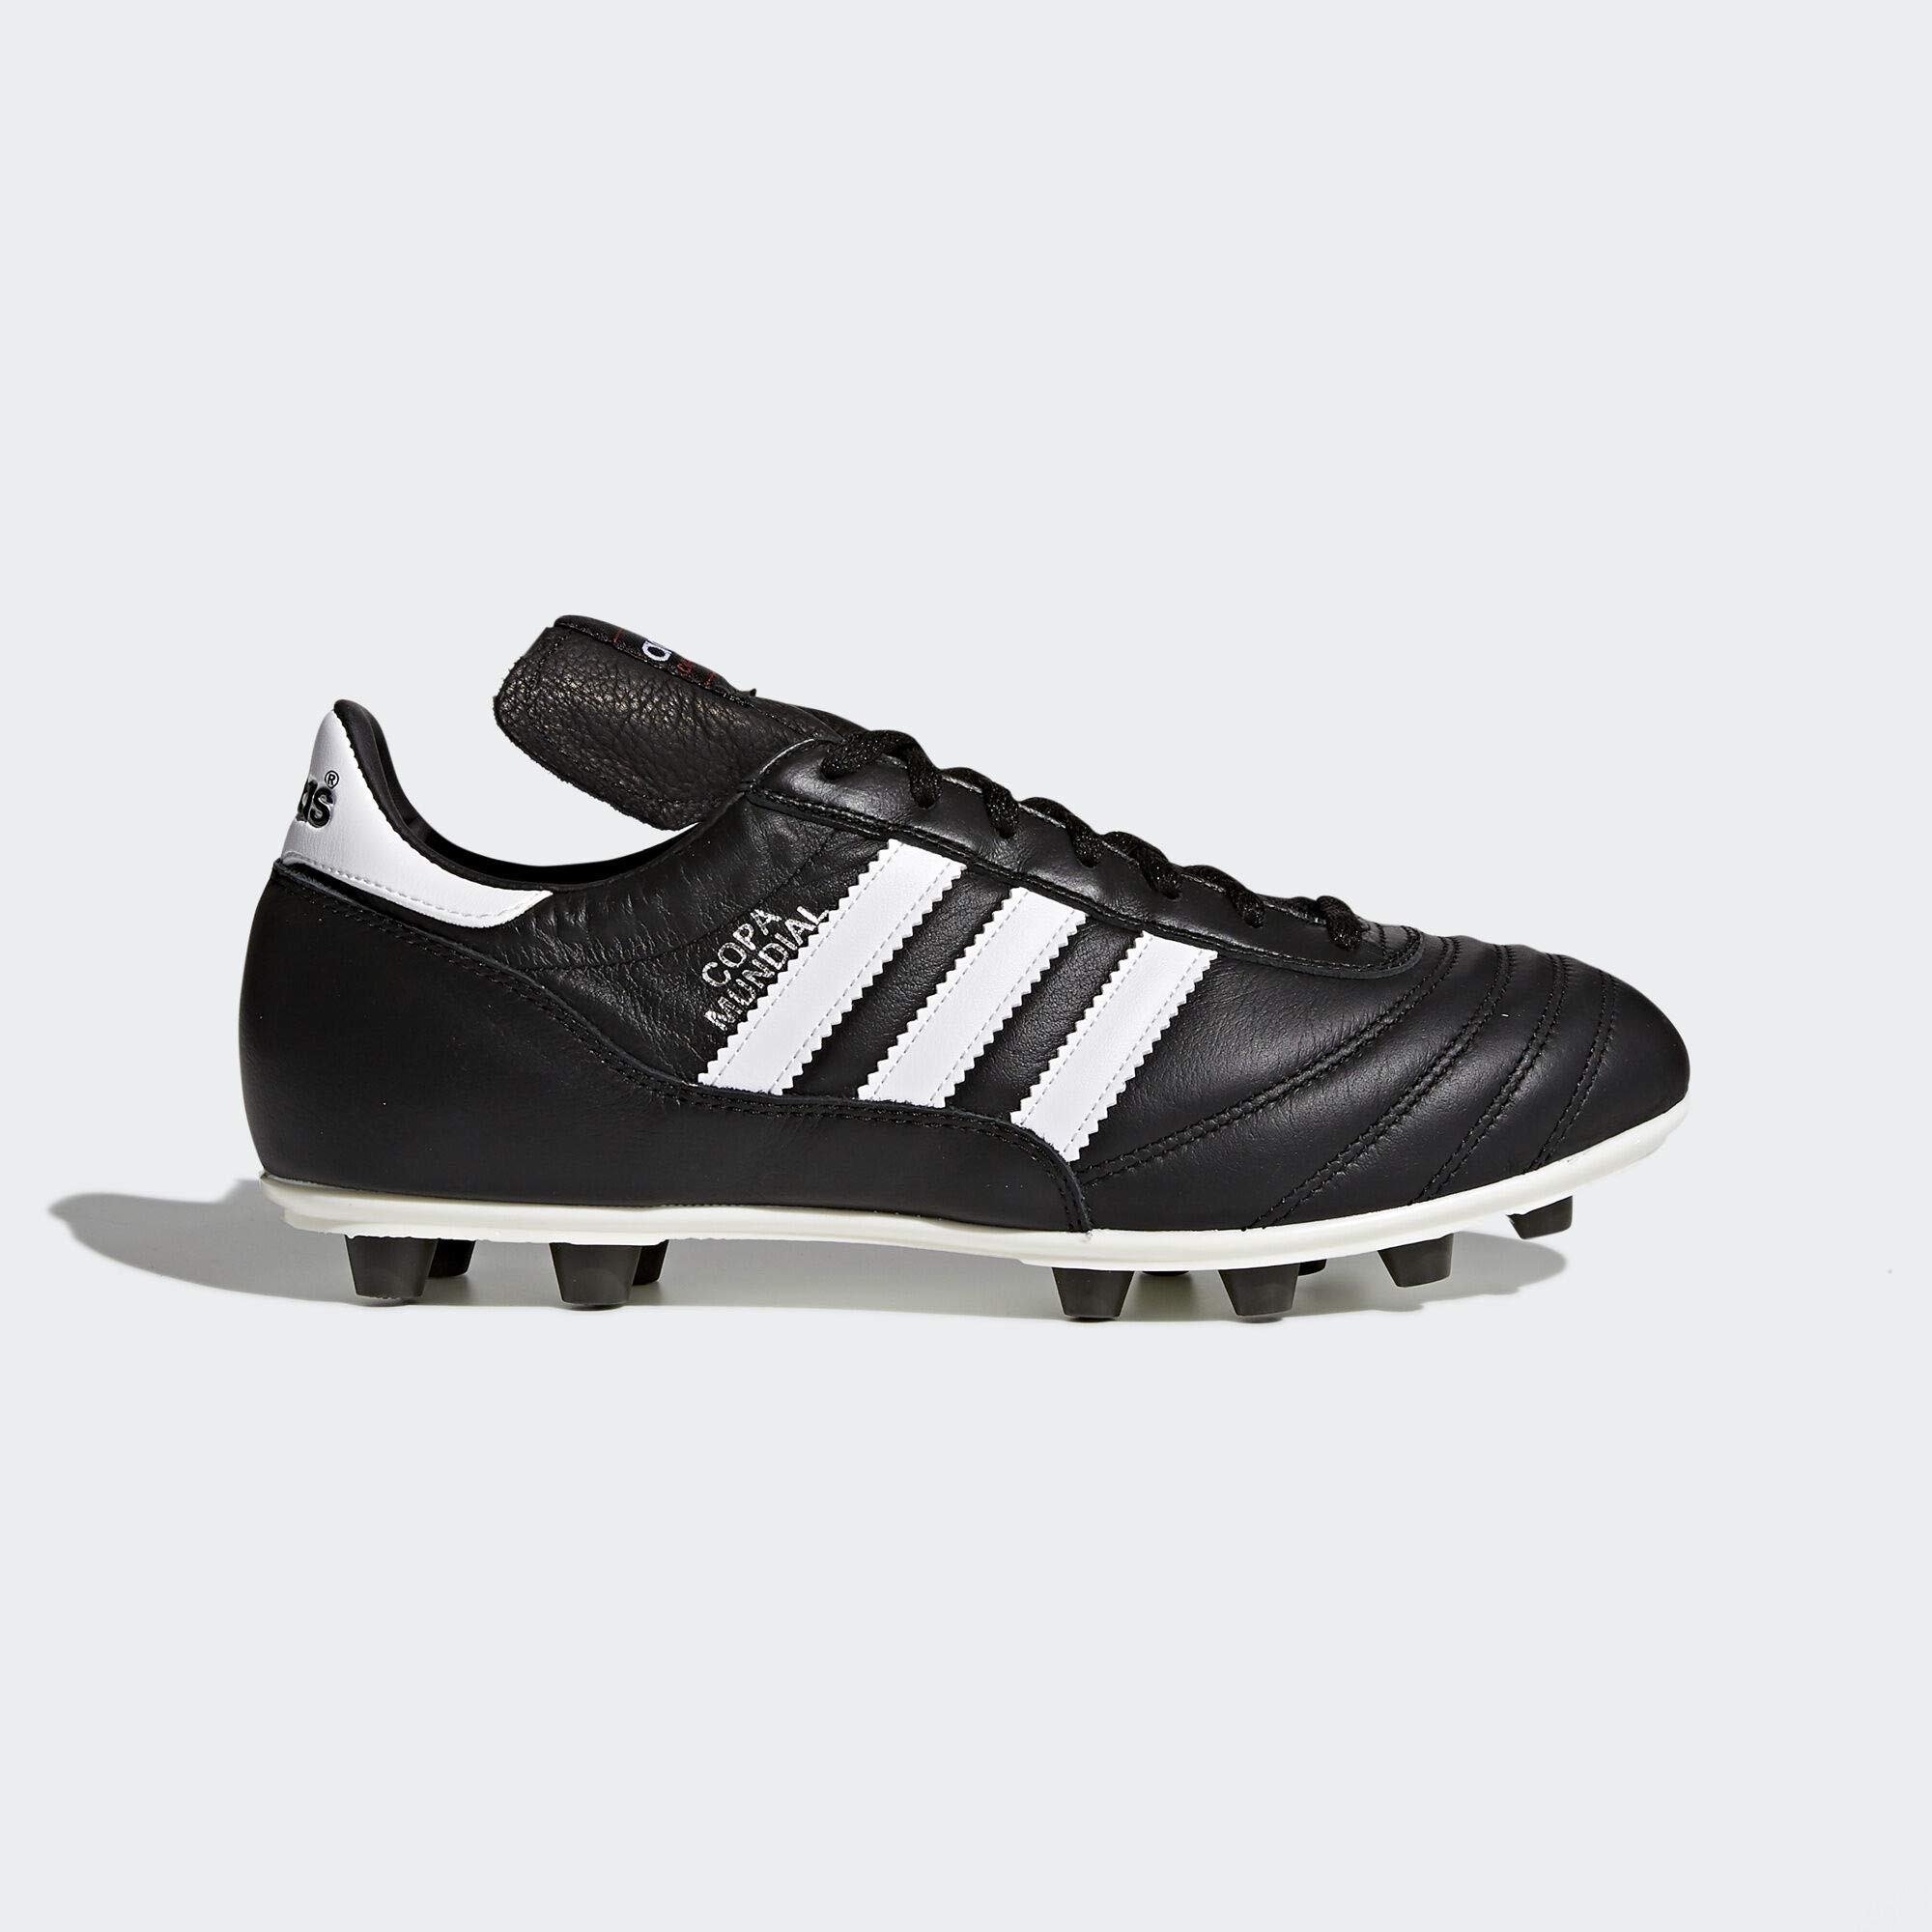 adidas Performance Men's Copa Mundial Soccer Shoe,Black/White/Black,10 M US by adidas